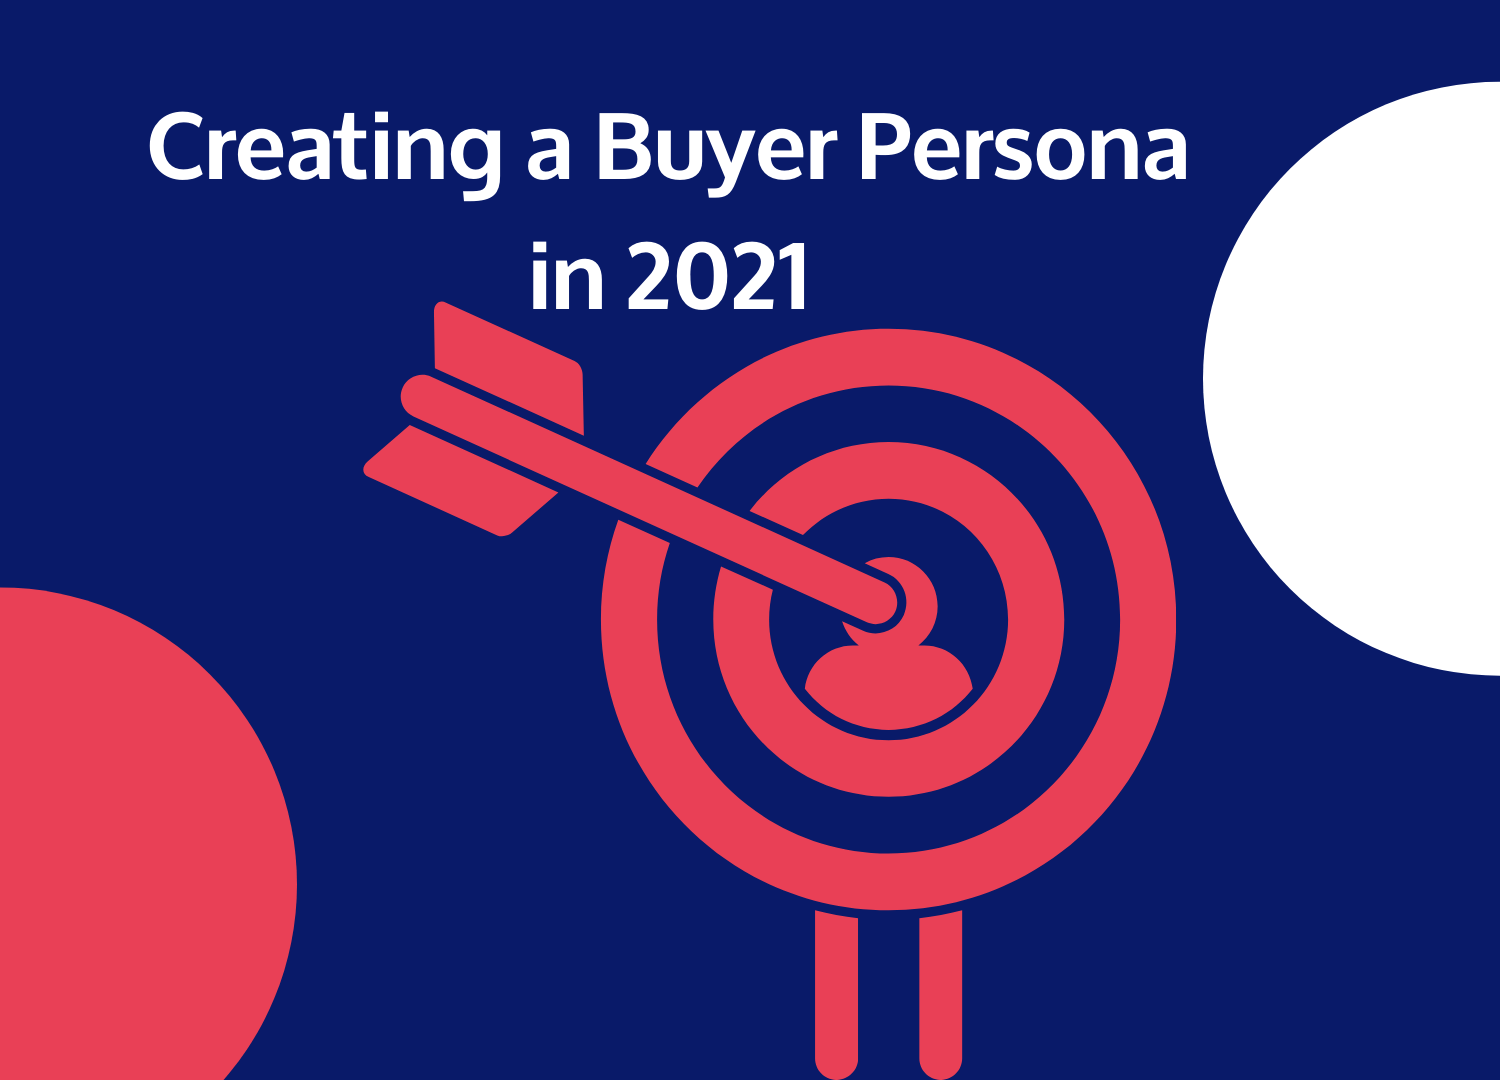 Creating a Buyer Persona in 2021